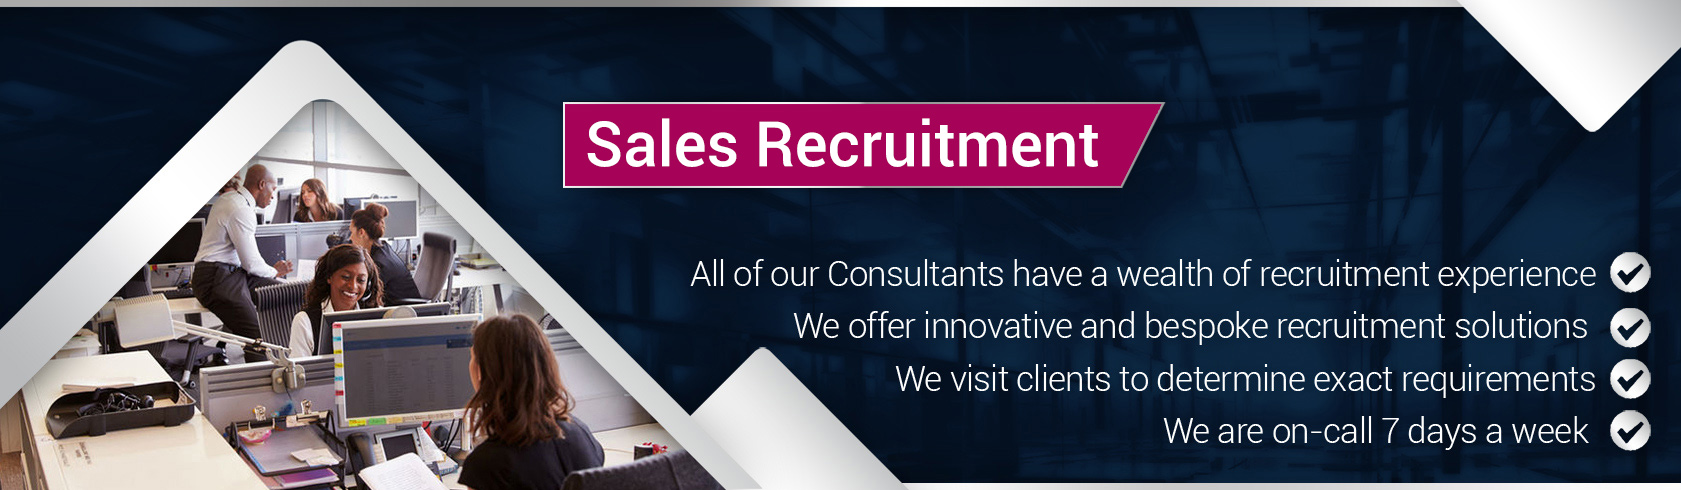 sales-recruitment